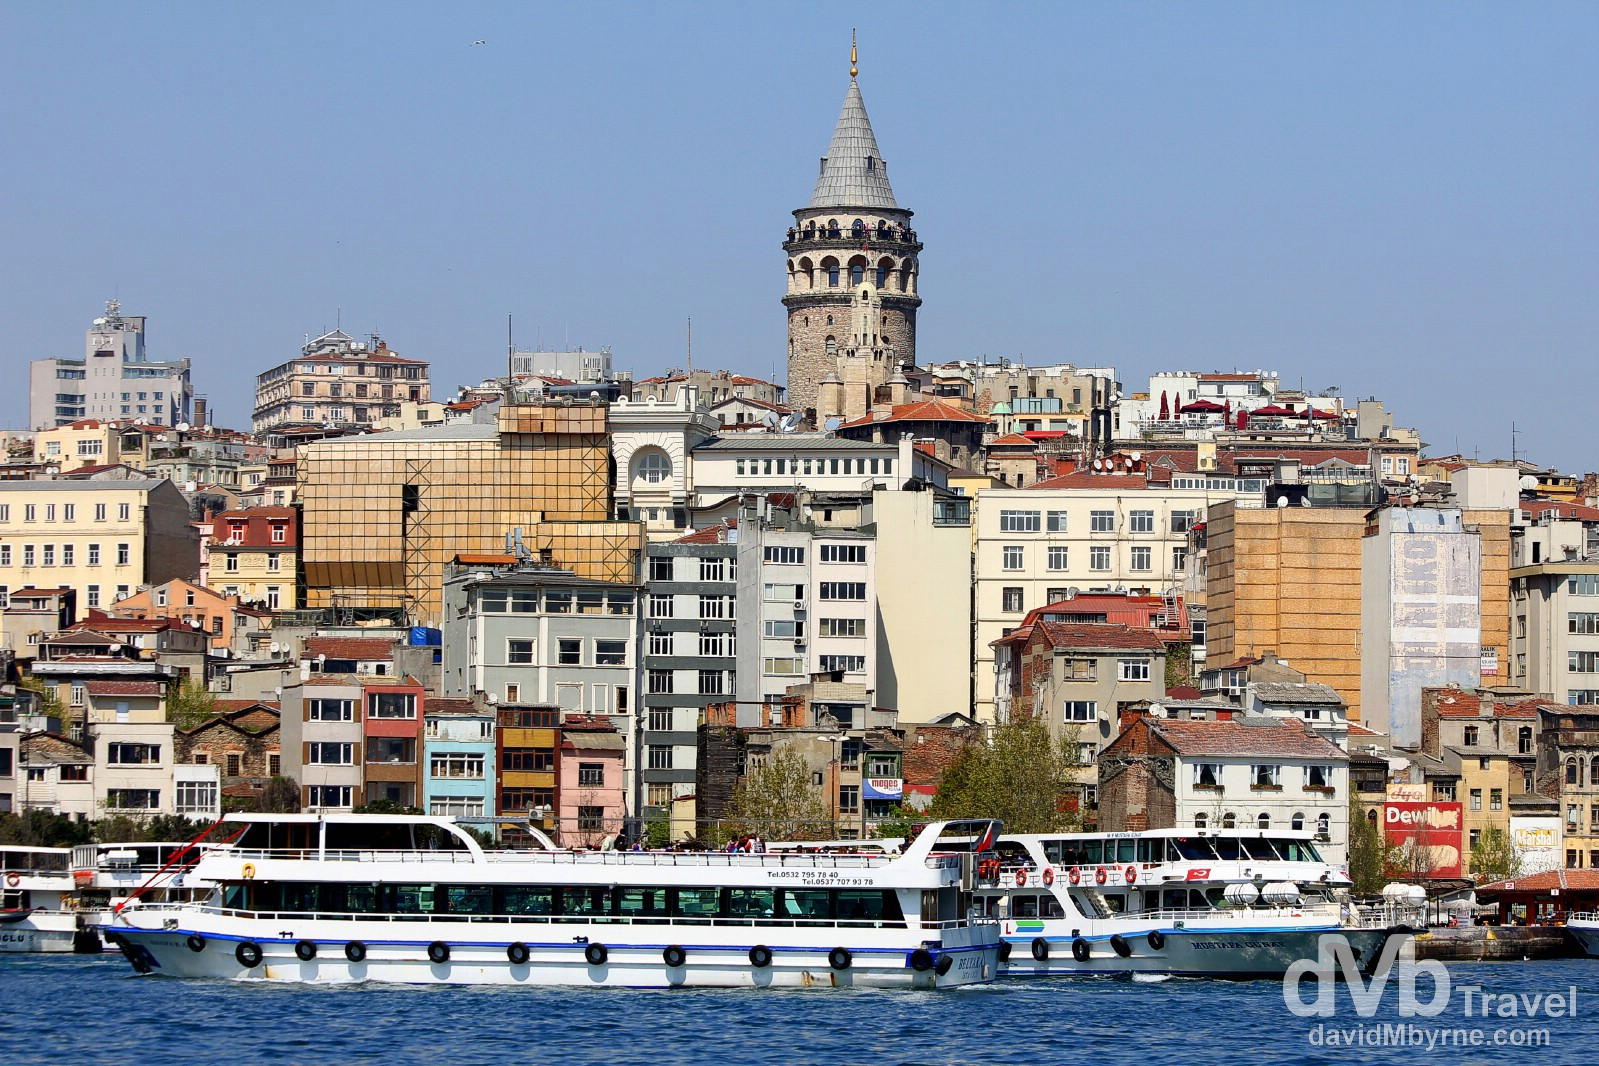 Boats on the Bosporus & the 1348 Galata Tower, a prominent landmark in the Galata district of Istanbul, Turkey. April 10th, 2014.